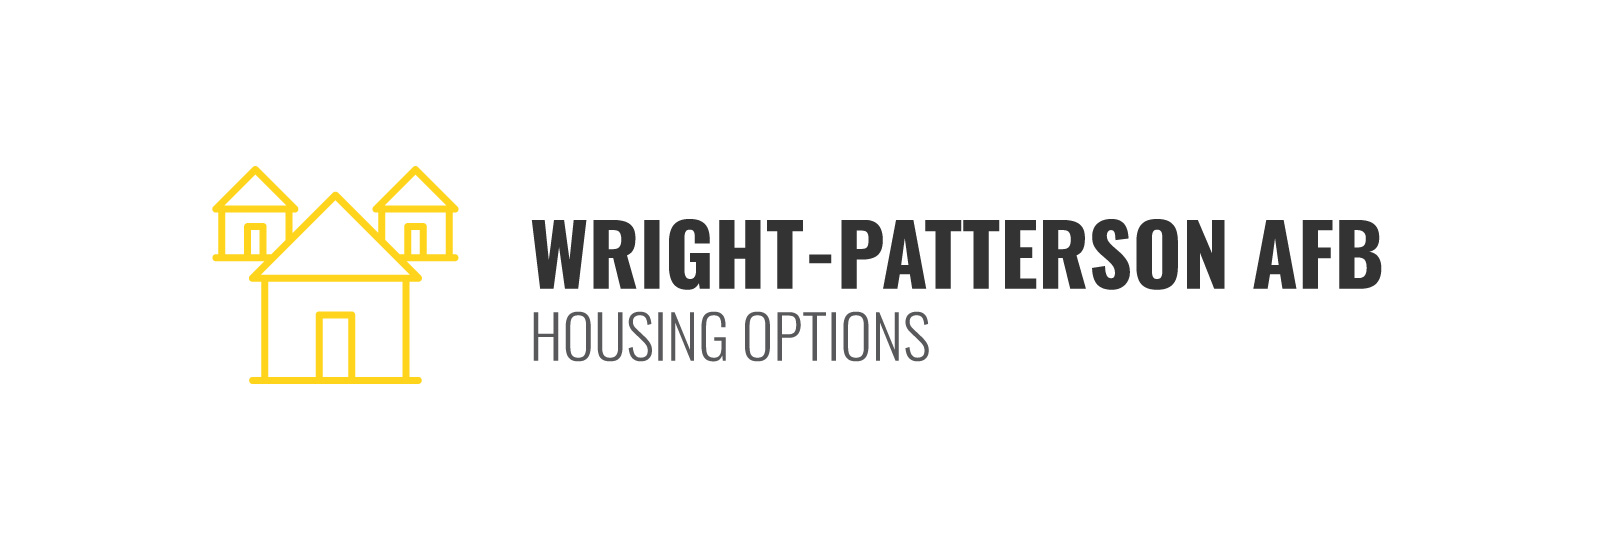 Wright-Patterson Air Force Base Housing Options